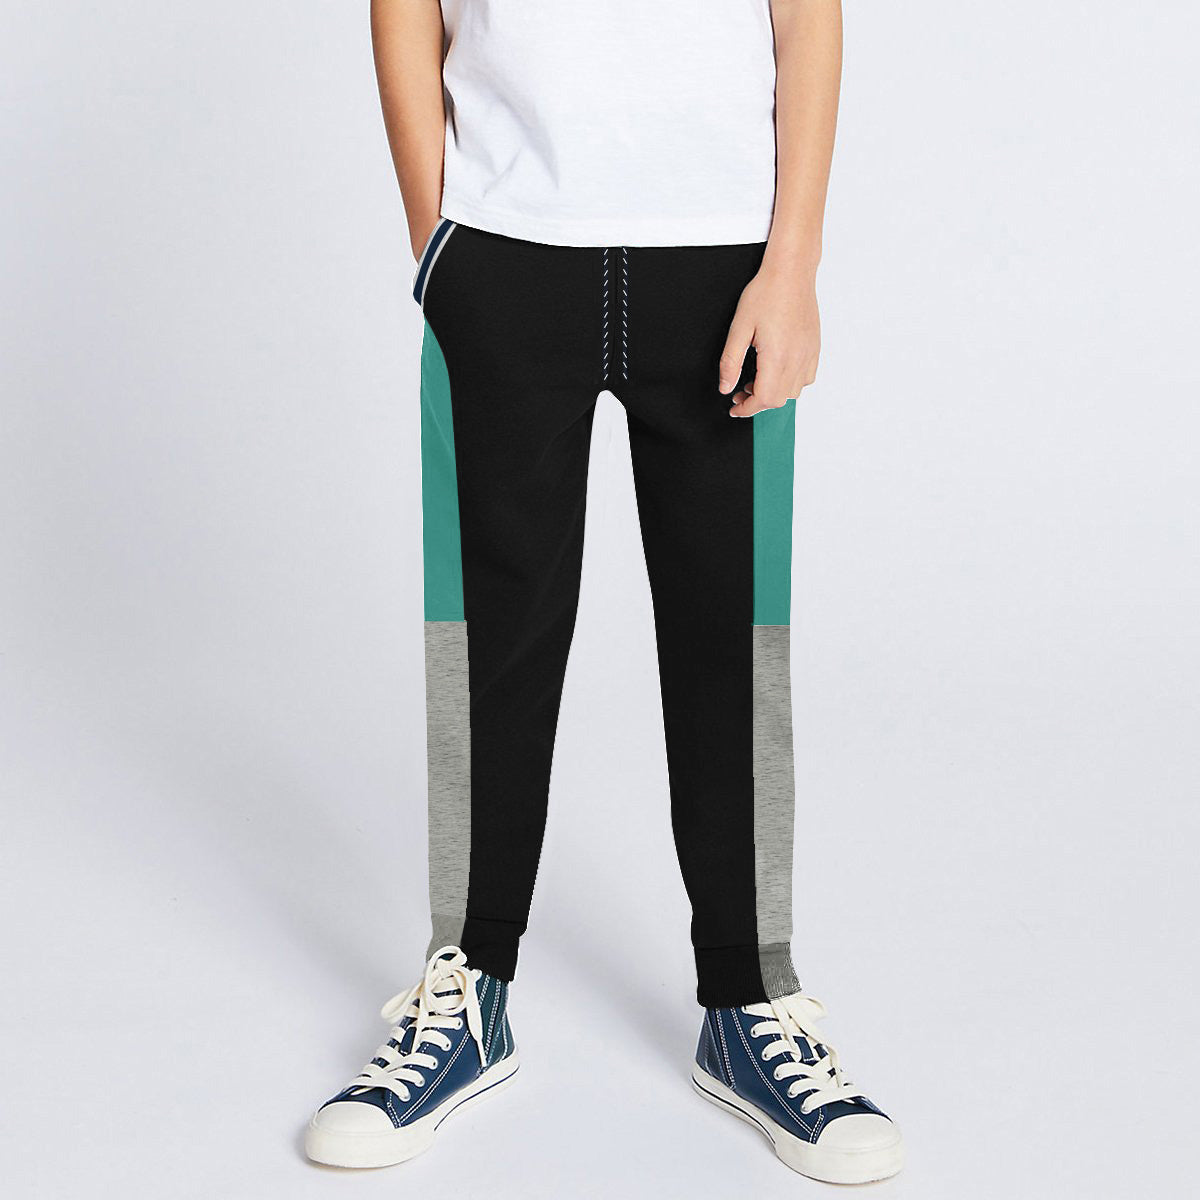 Next Slim Fit Jogger Trouser For Kids-Black with Cyan & Grey Melange Panels-SP2681